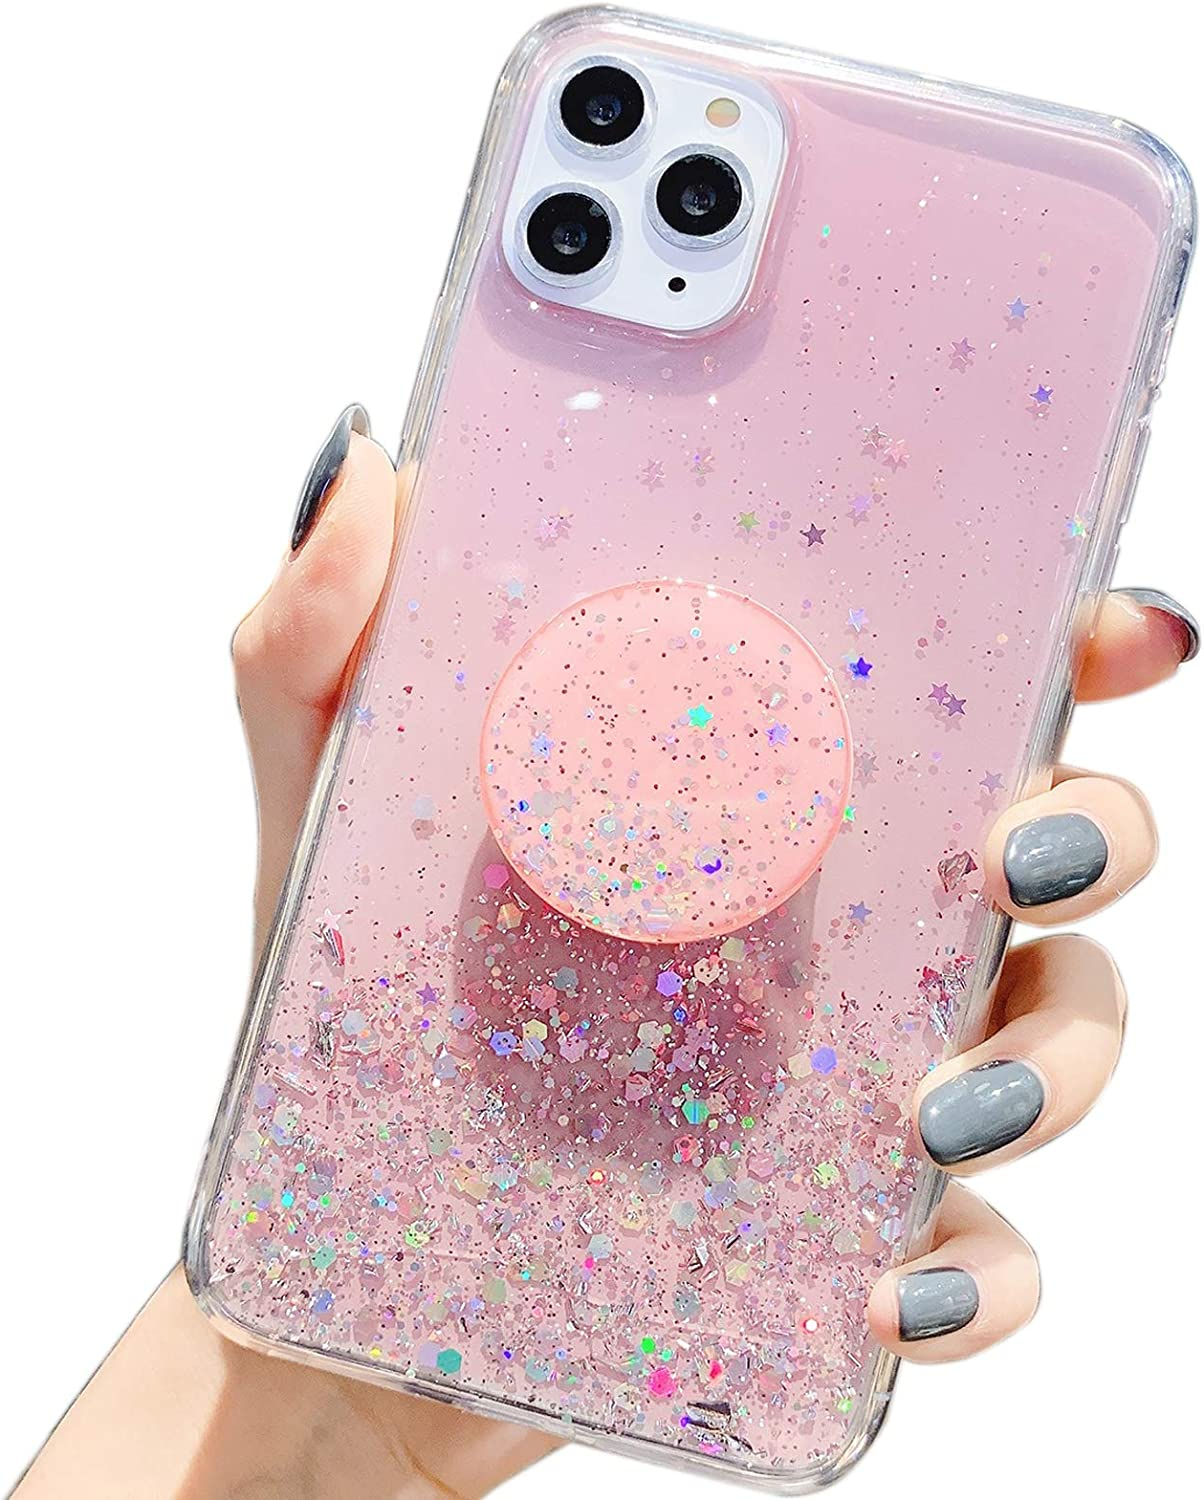 Winzizo Designed for iPhone 11 Pro Max Case Glitter Sparkle Bling Women Girls Cute Cases with Ring Kickstand Slim Soft Silicone Phone Protective Cover 6.5 inch (Pink)